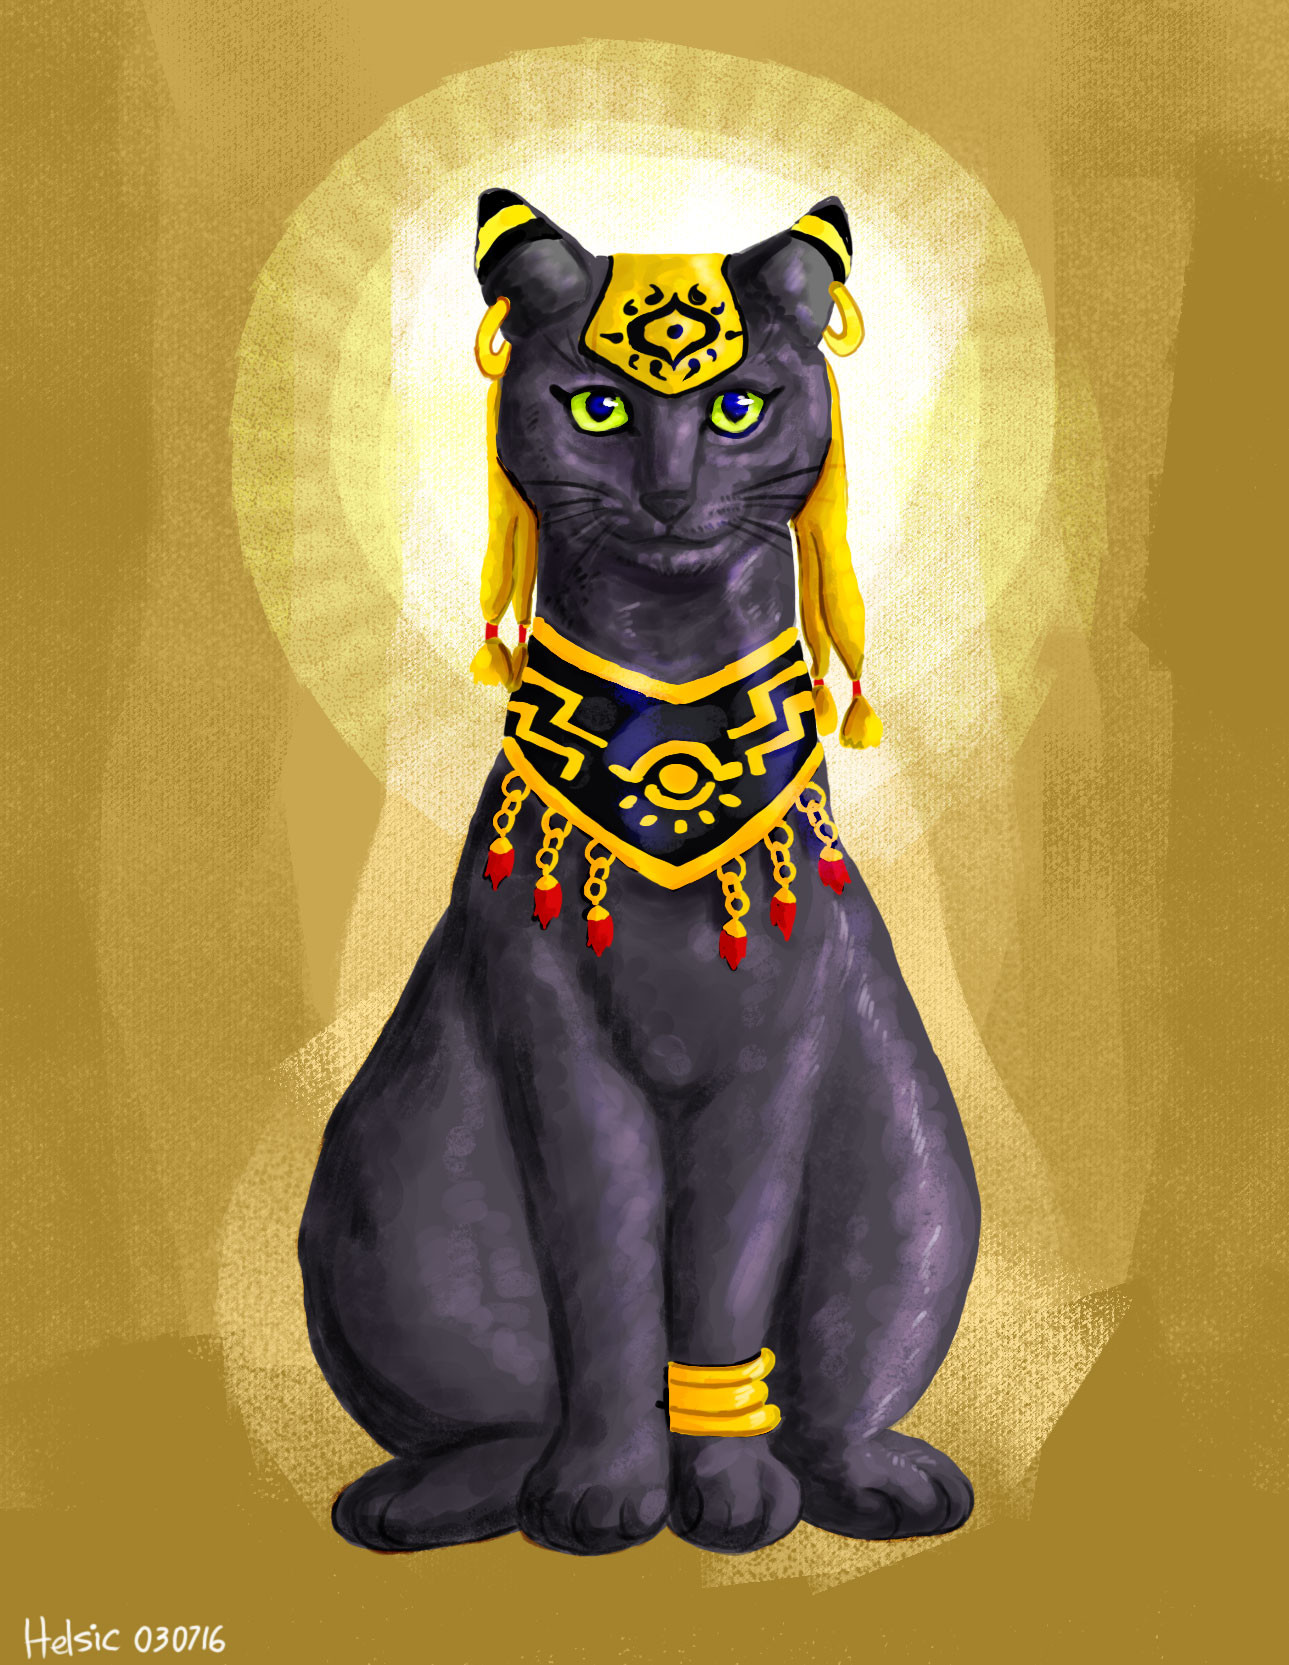 Goddess of cats, protection, joy, dance, music, family in ancient Egypt